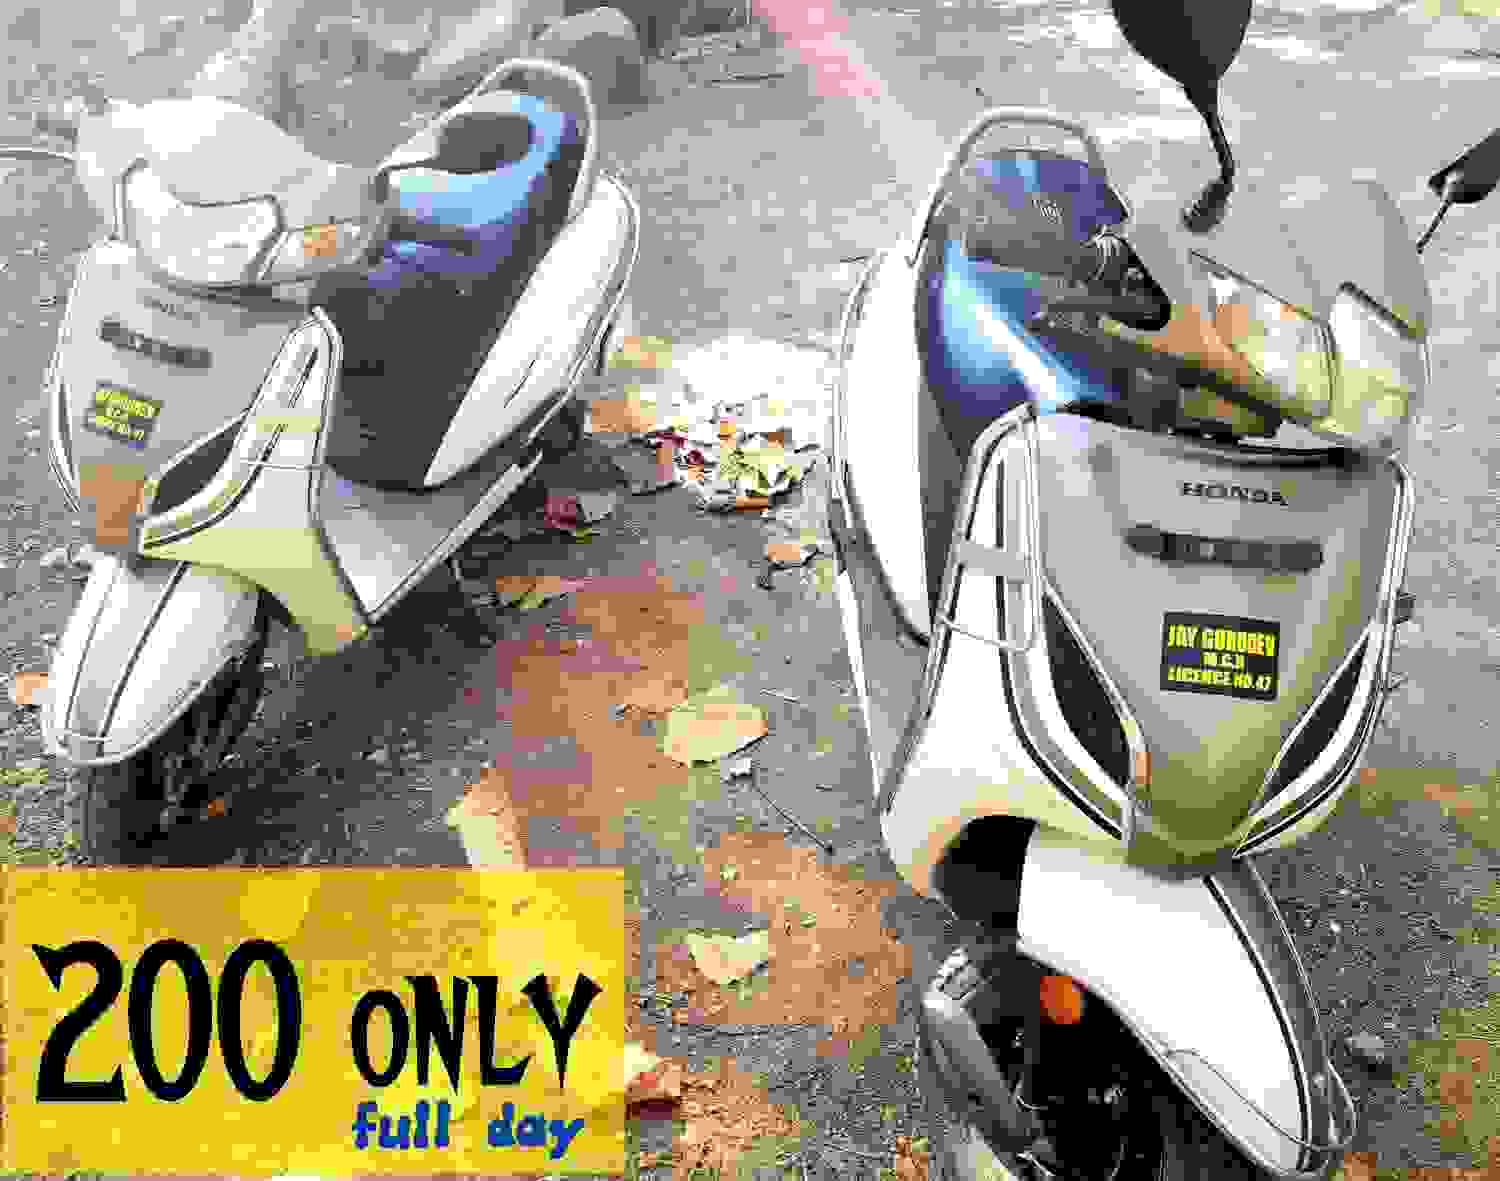 scooter bikes rentals in mount abu. hire activa in mount abu .